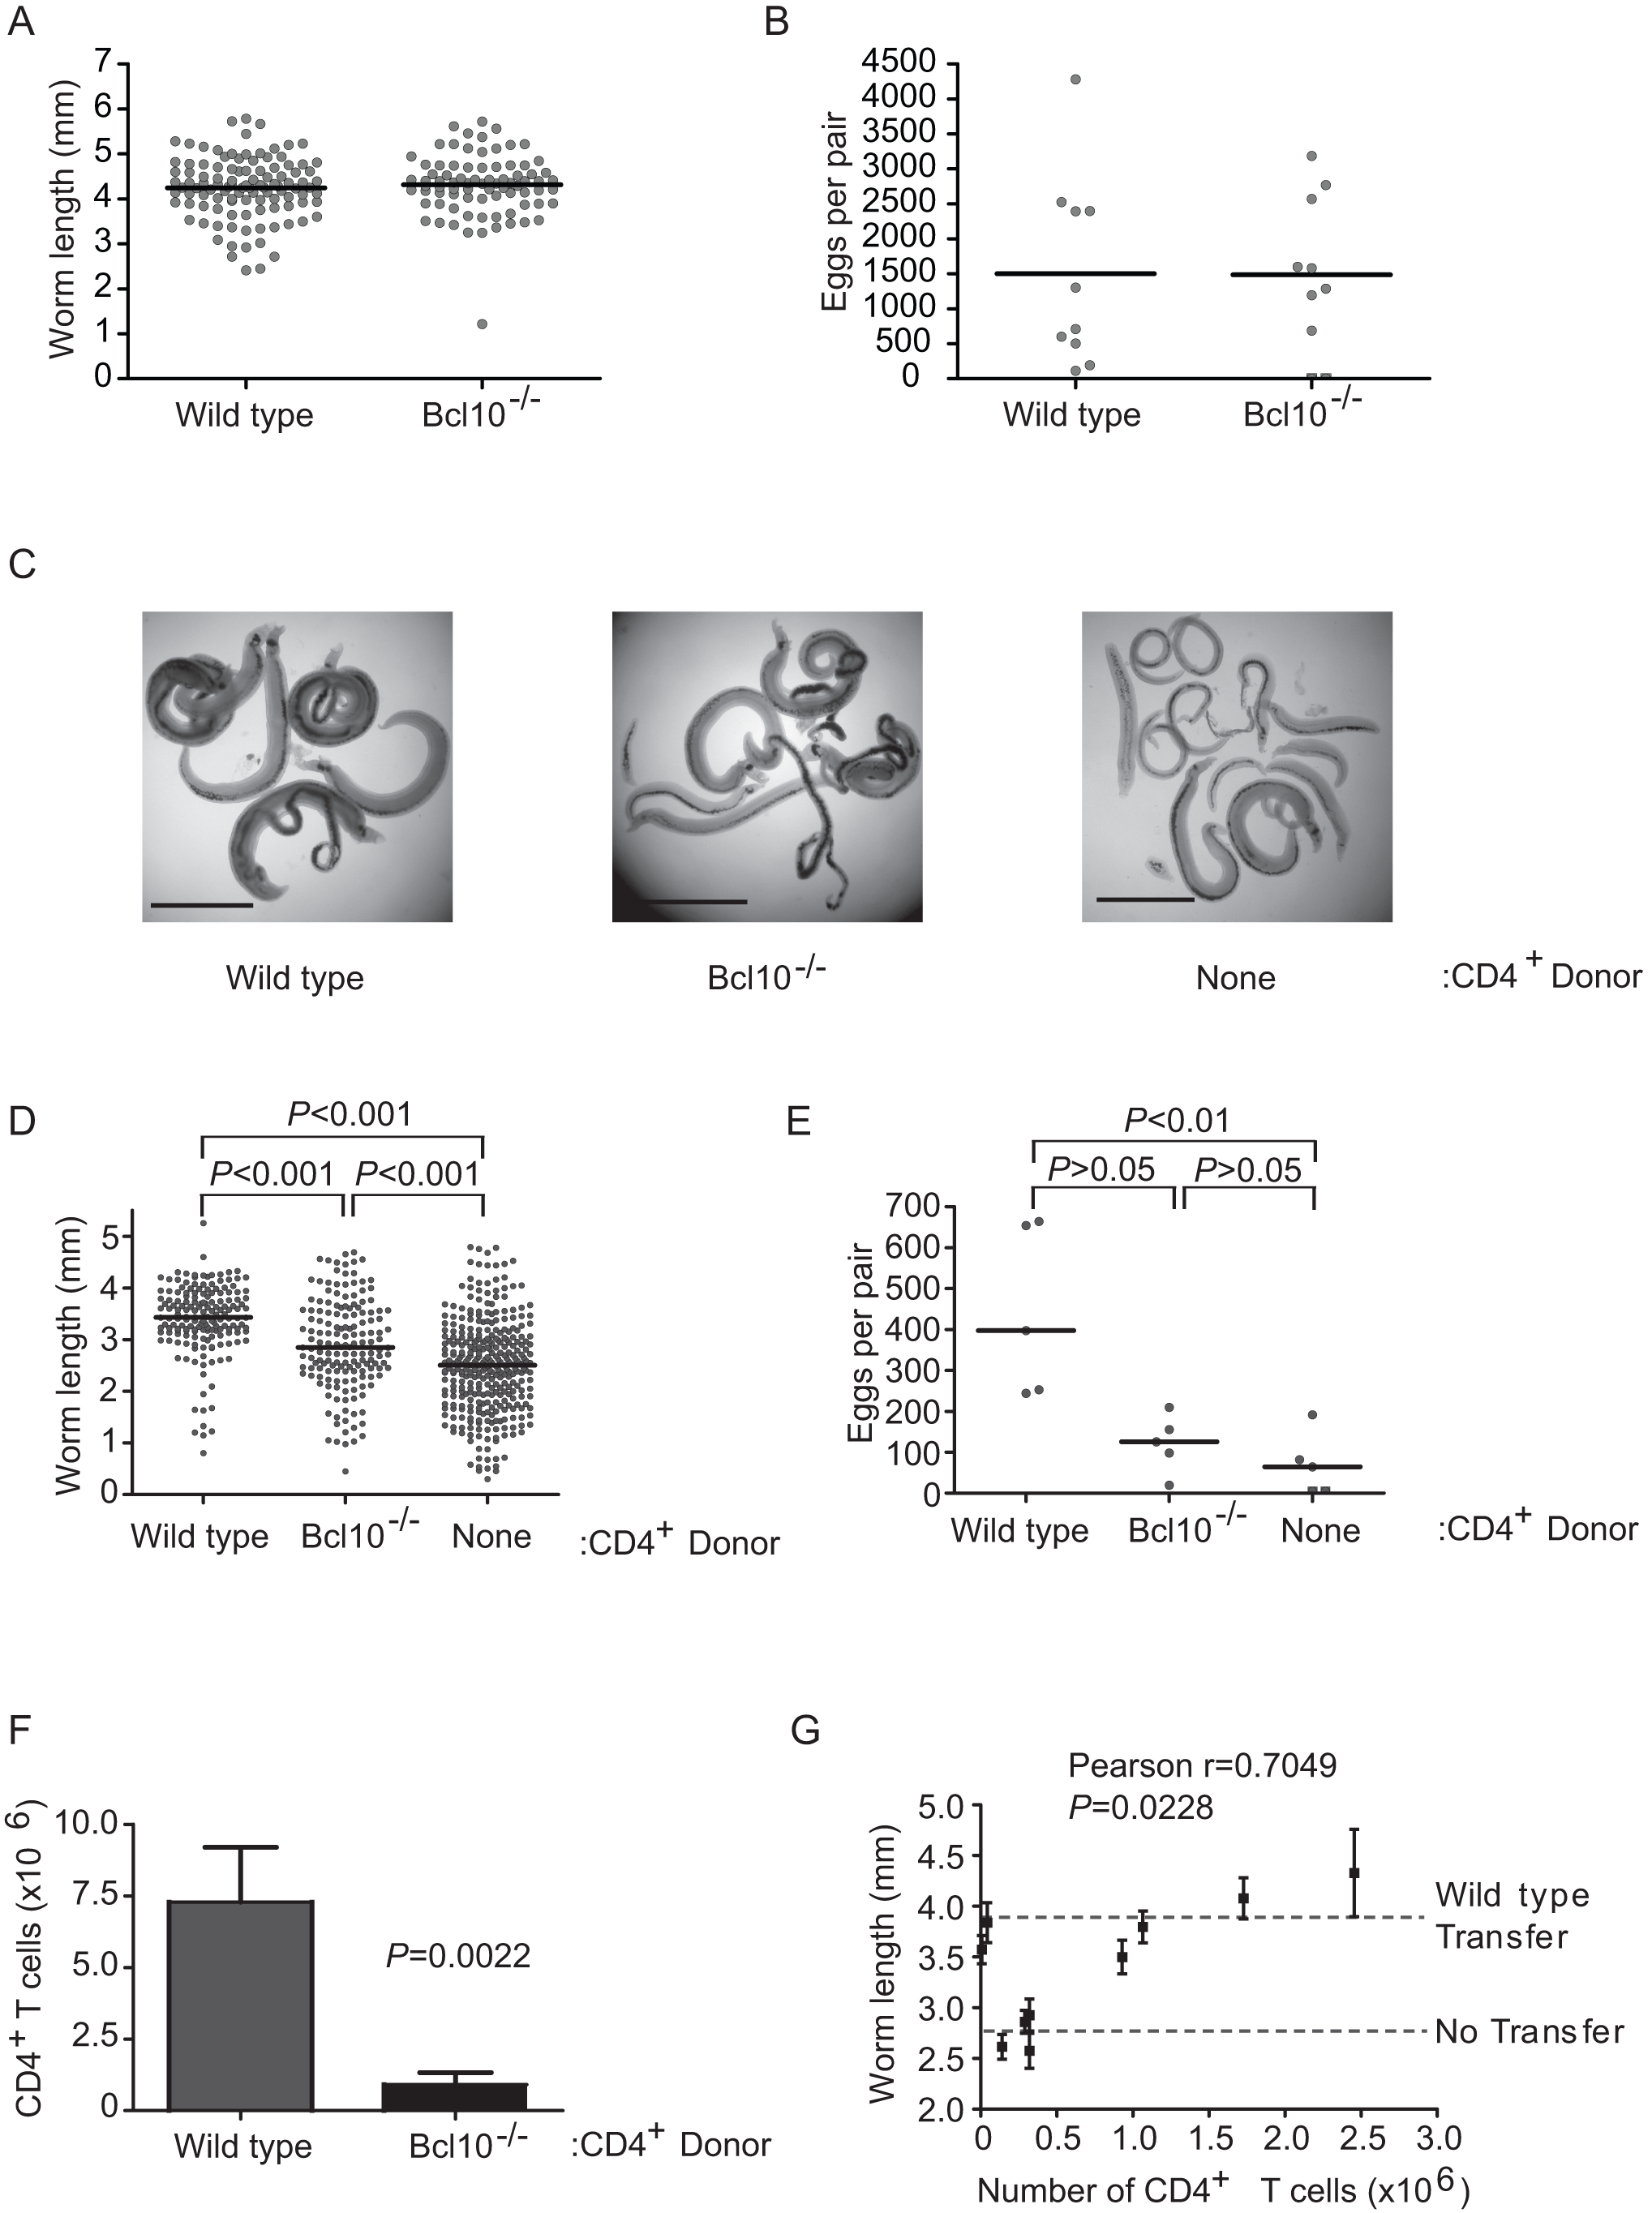 TCR signaling in CD4<sup>+</sup> T cells is dispensable for <i>S. mansoni</i> development.